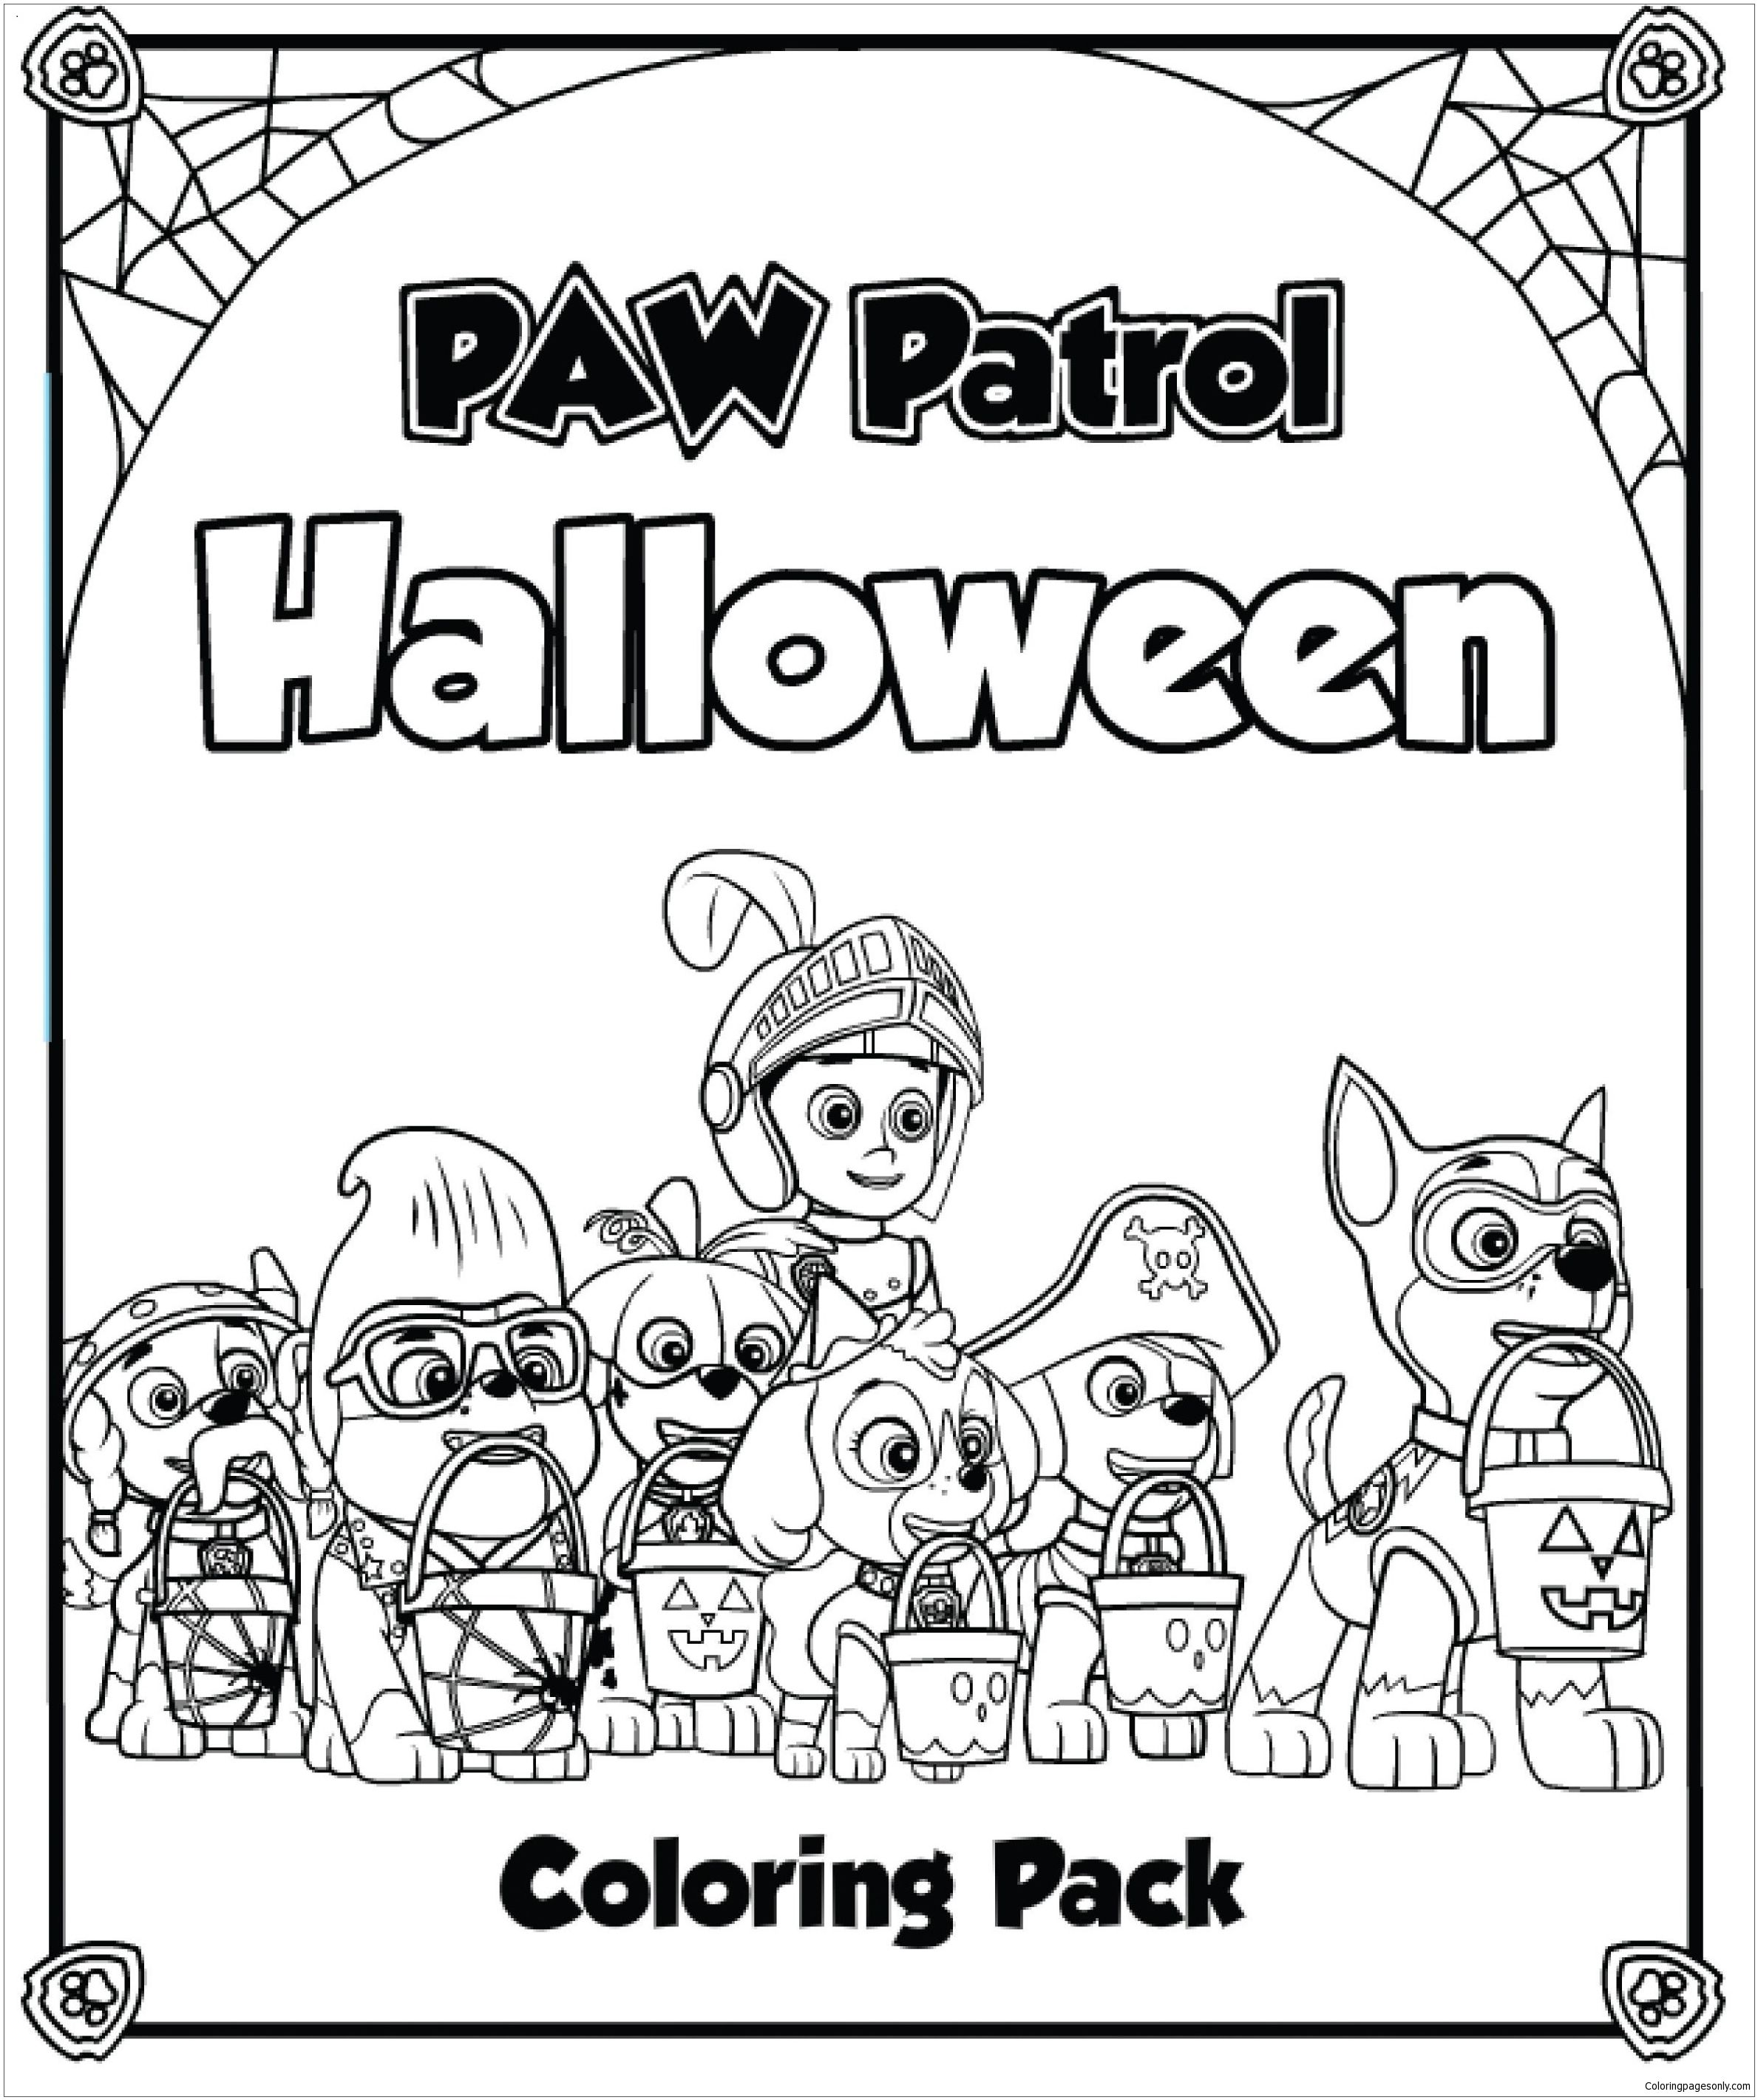 Paw Patrol Halloween 2 Coloring Page Coloriage Paw Patrol Coloriage Coloriage Halloween A Imprimer